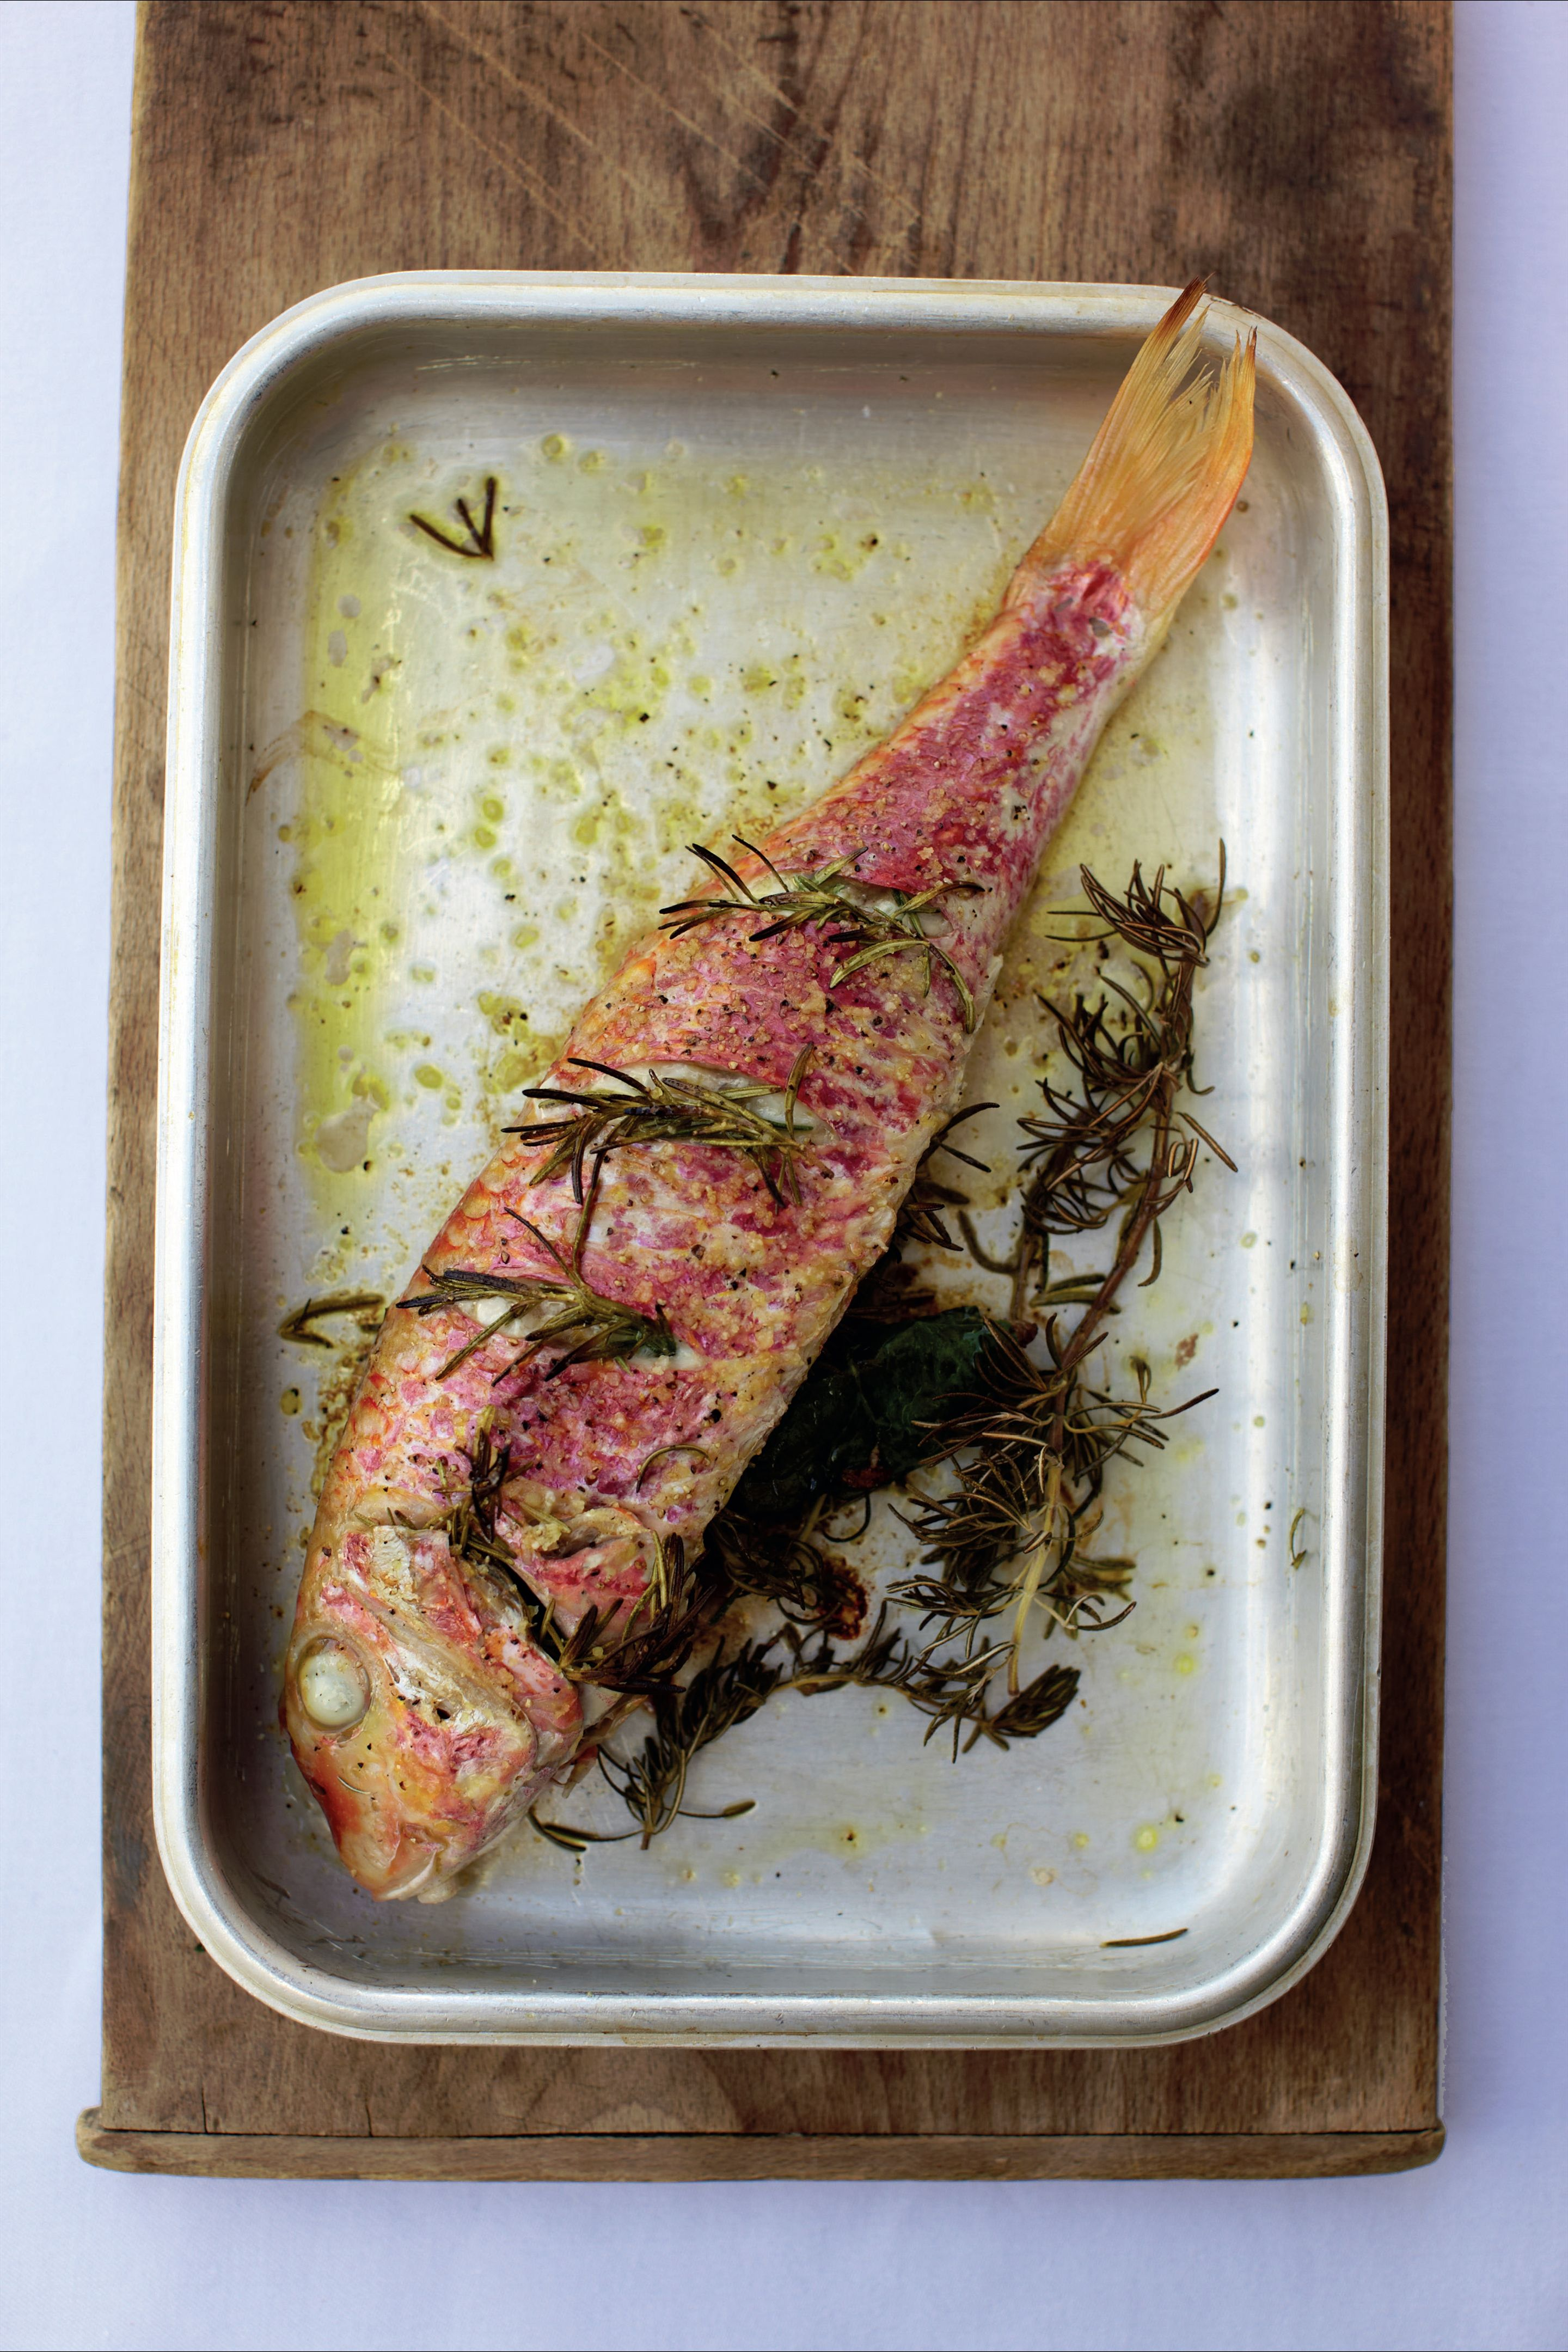 Red mullet baked with rosemary and wild garlic